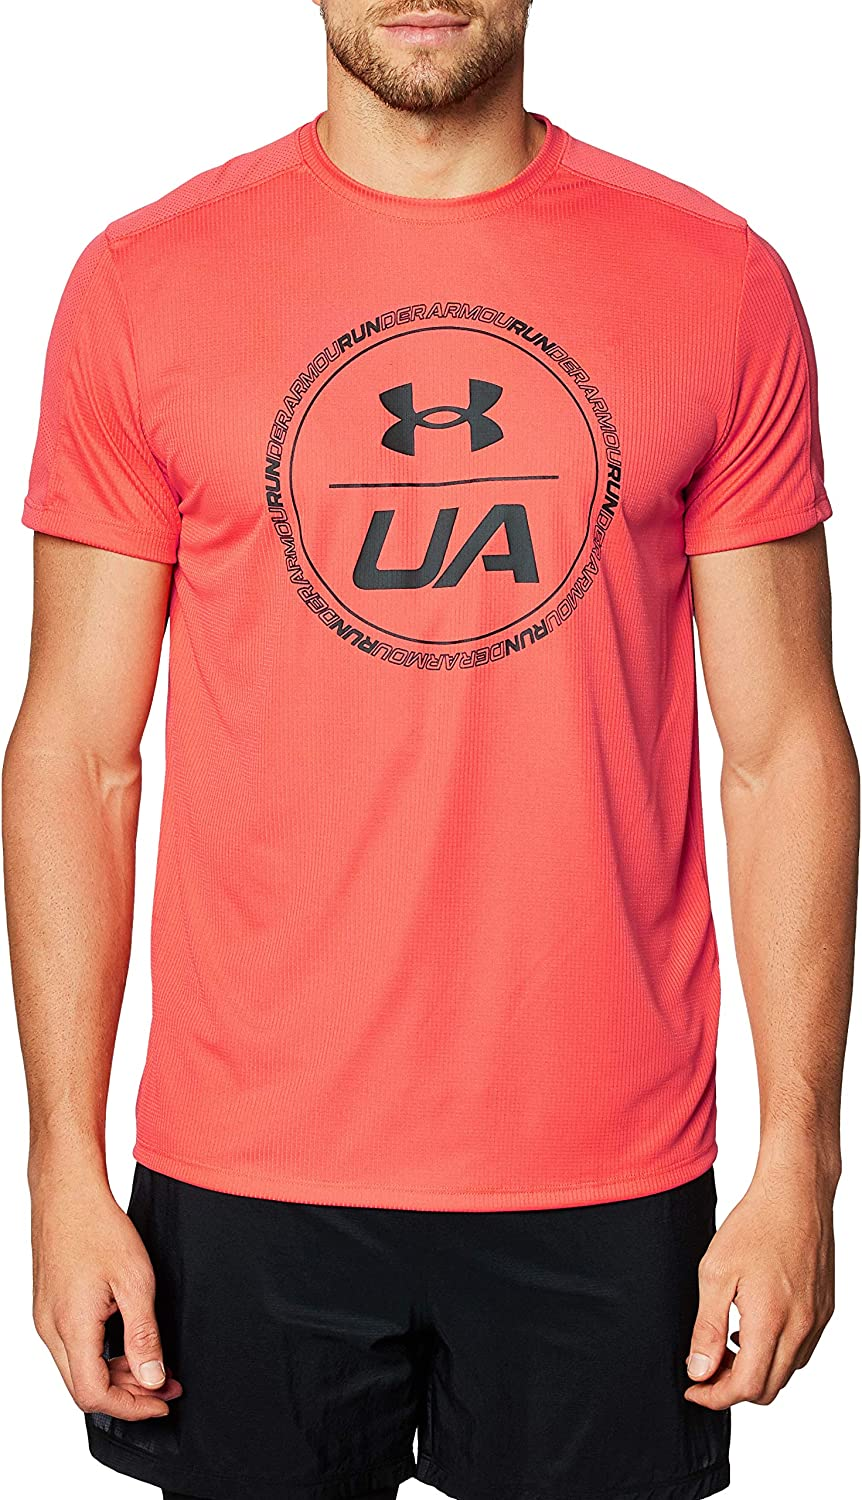 Under Armour Men's Speed Graphic Limited price sale Stride T-Shirt New life Short-Sleeve